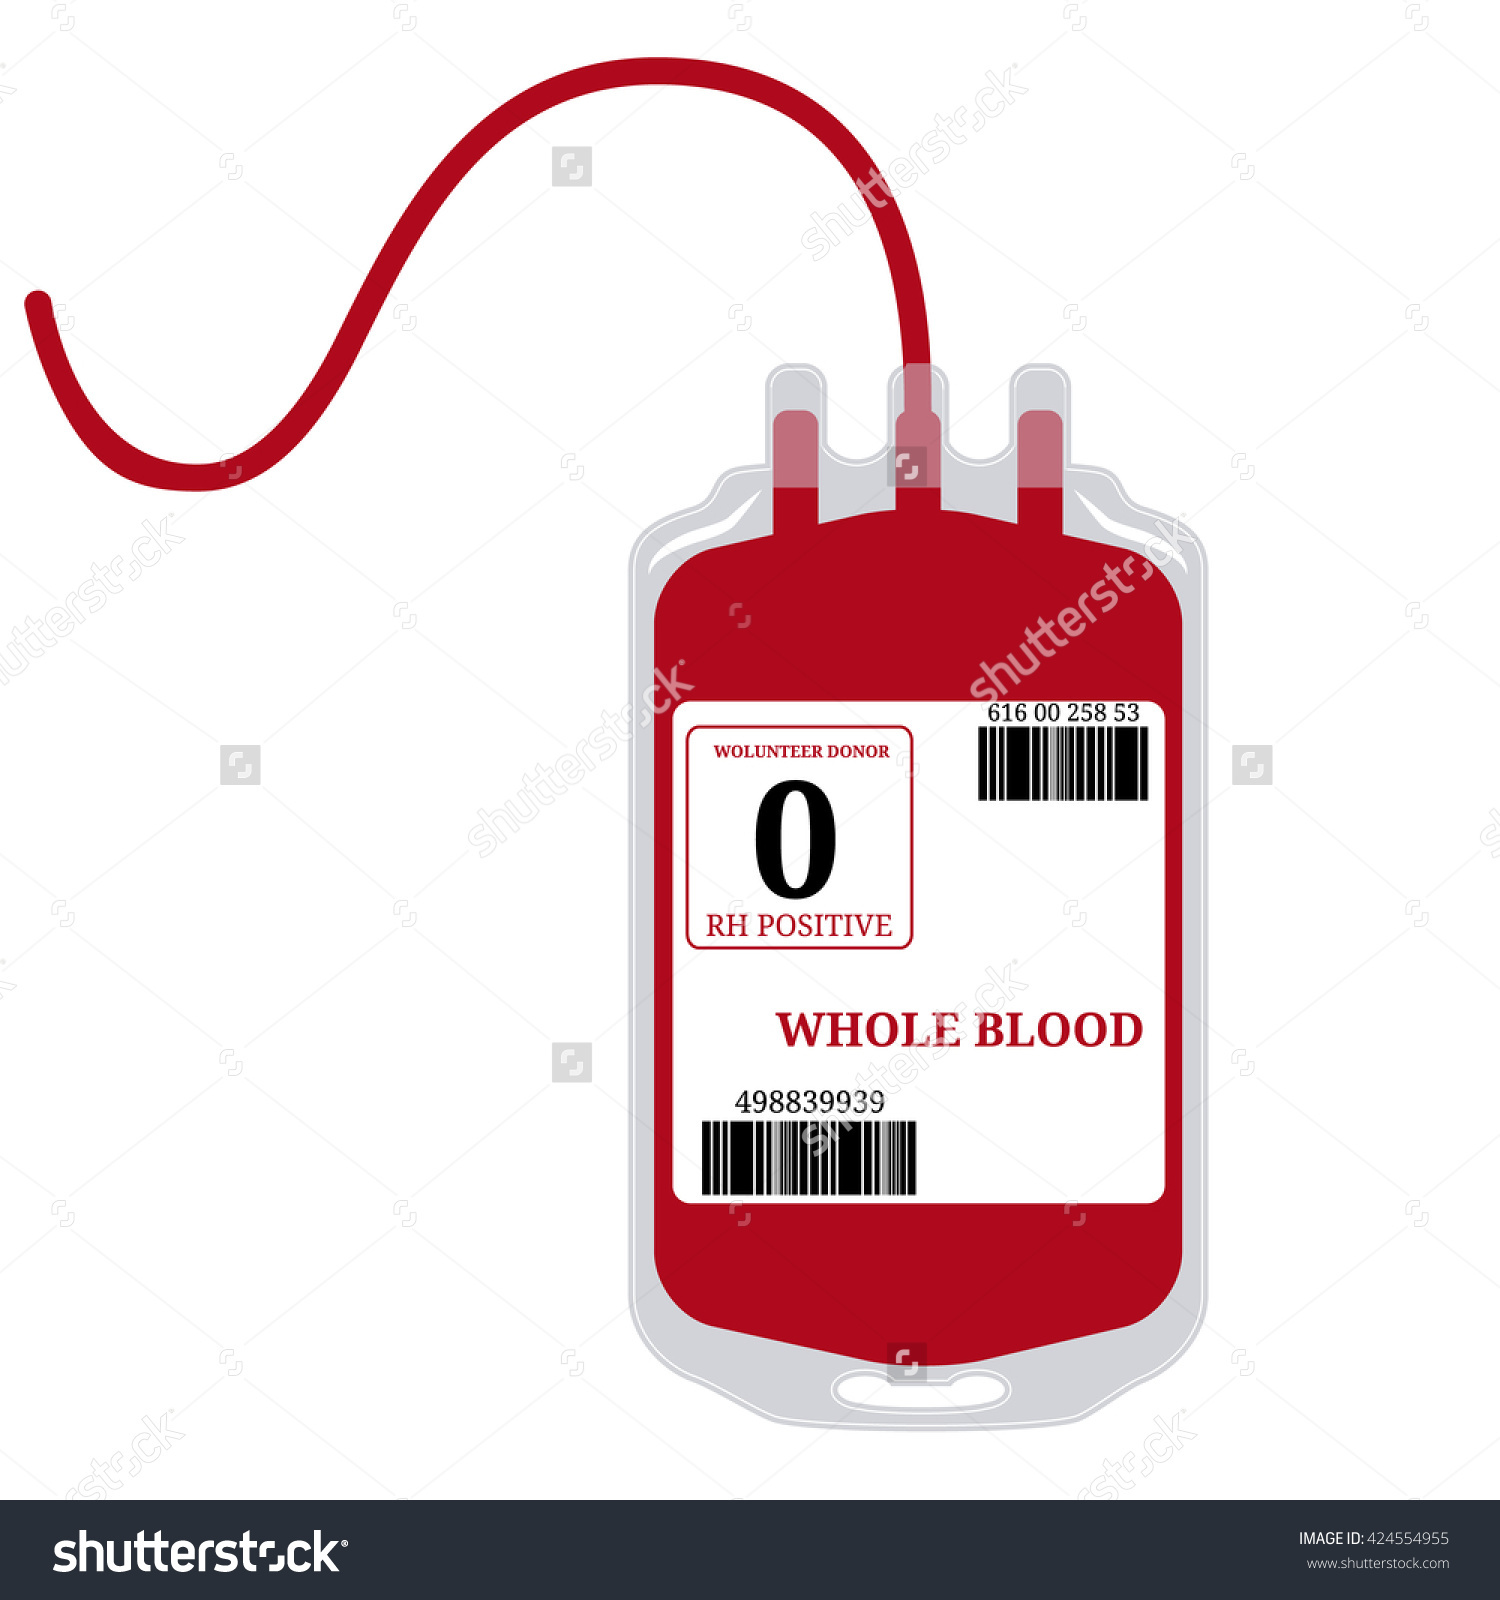 Blood Bag With Label And Text Whole Blood Isolated On White.